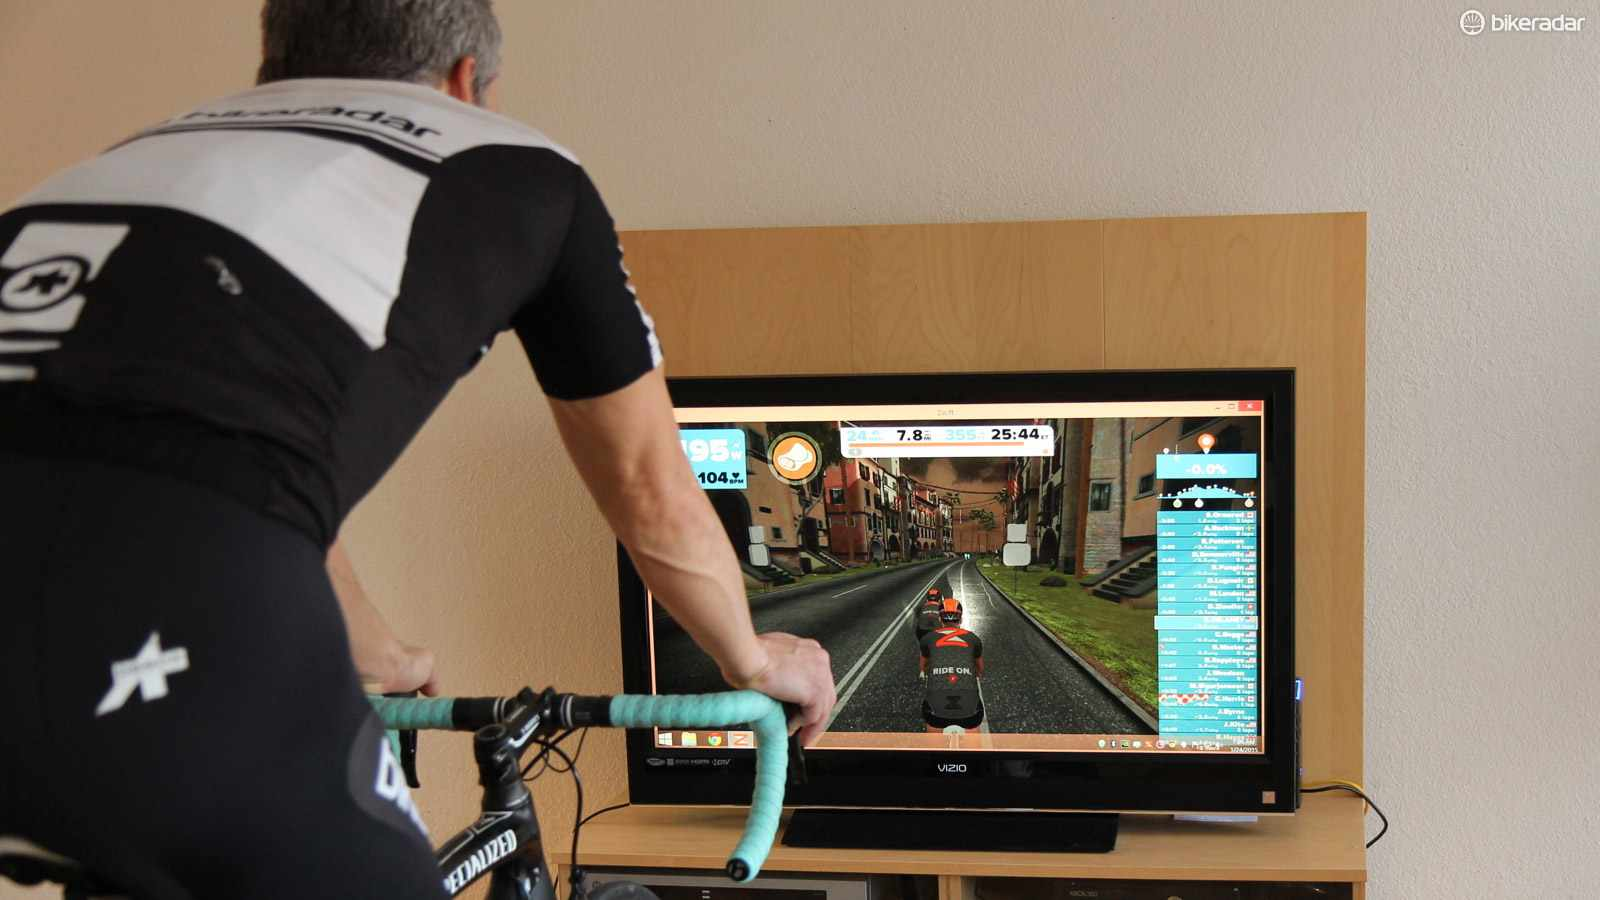 Zwift is the best interactive riding experience we have tried